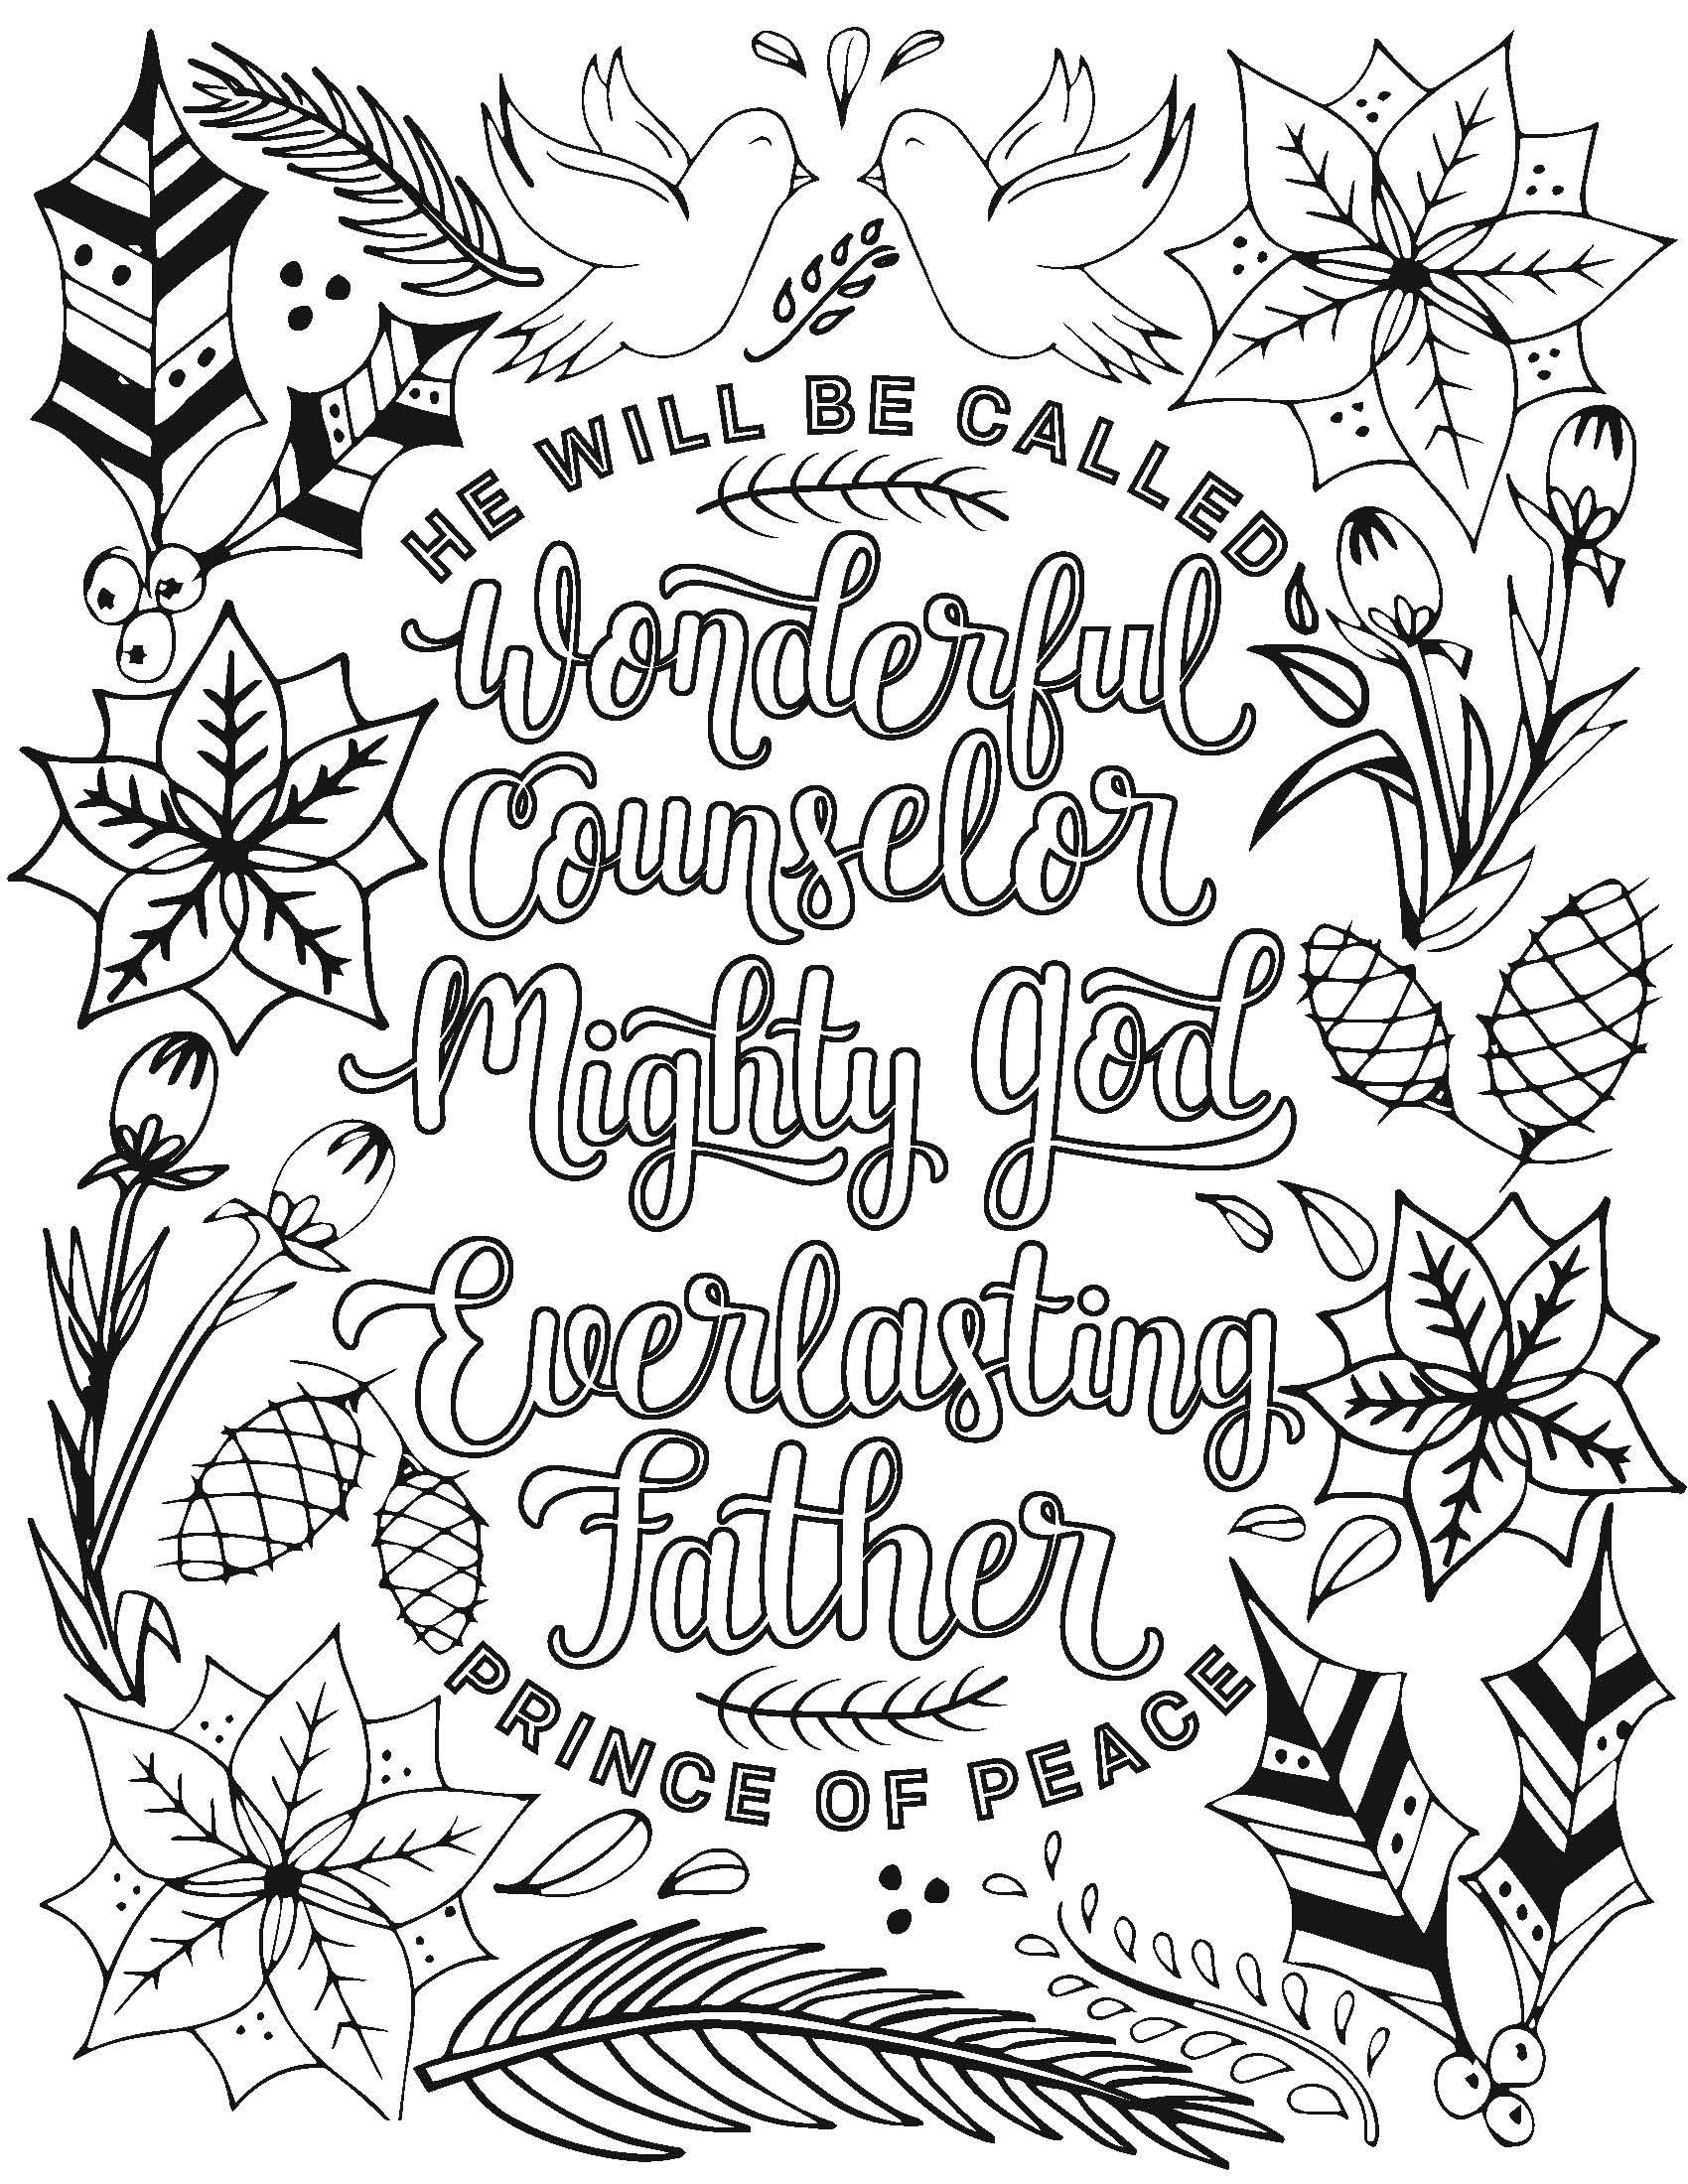 Merry Christmas MOPS coloring page Bible verse coloring